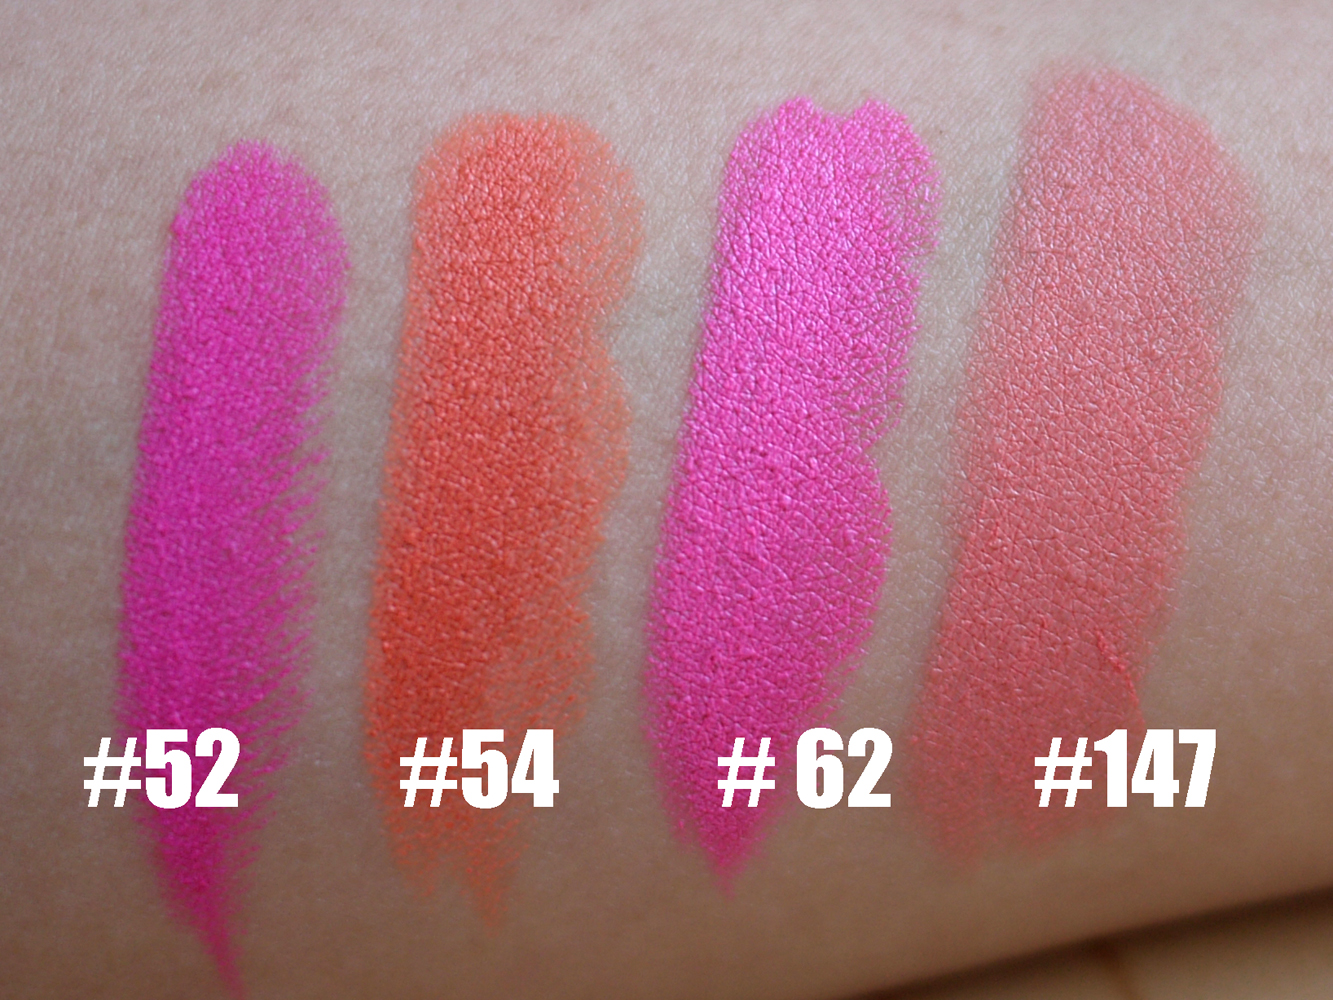 EbeautyBlog.com: Barry M Lipstick Swatches + Review